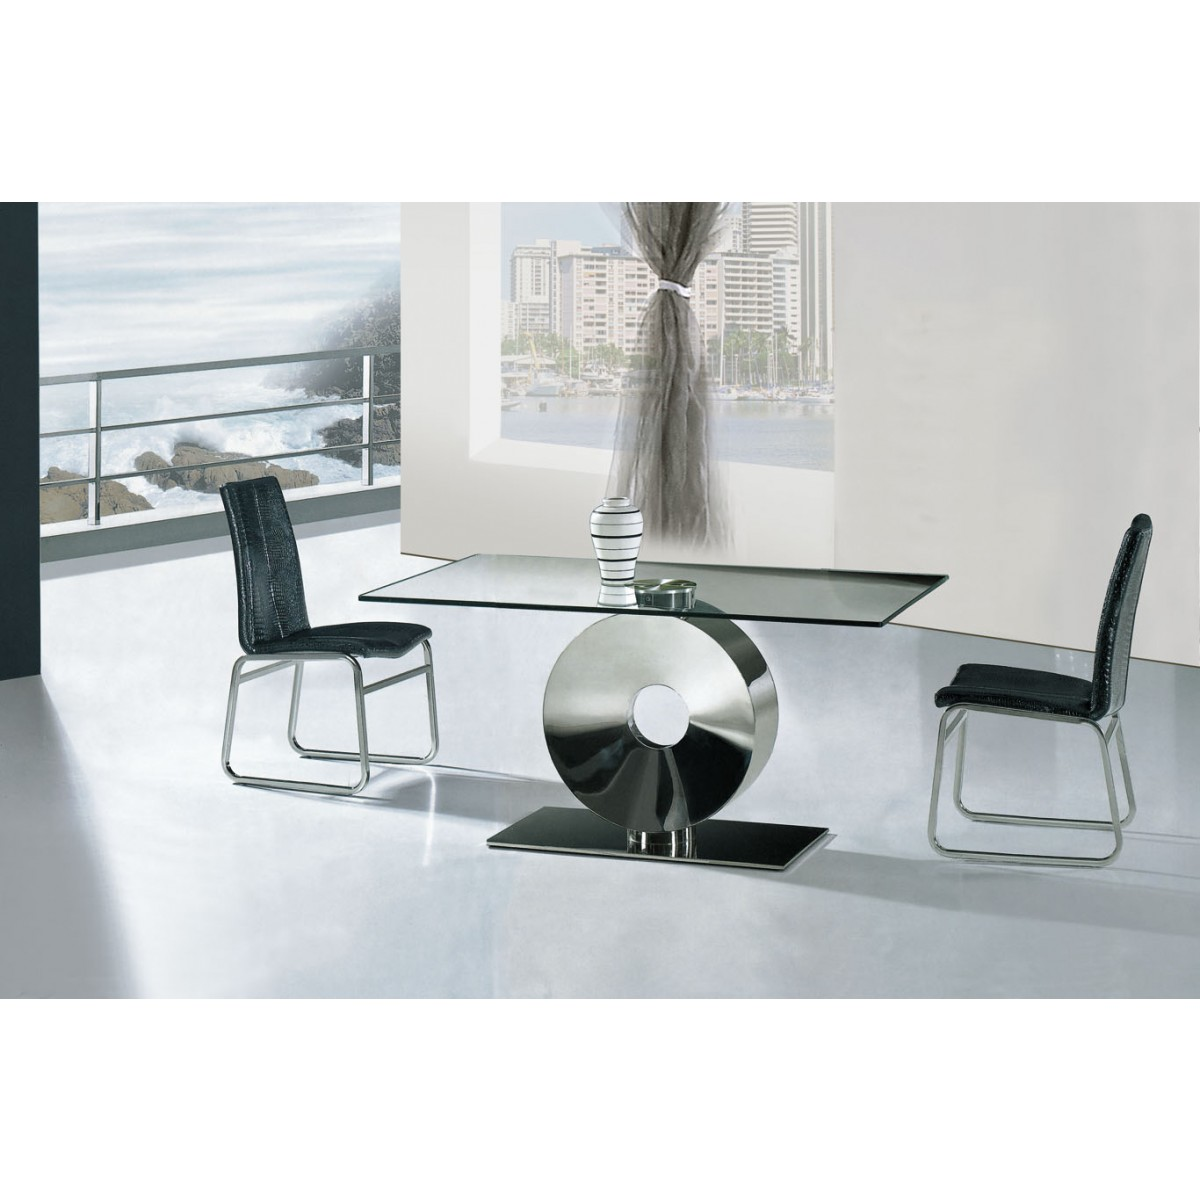 Table de salle manger design ring 160cm for Table salle a manger rallonge design